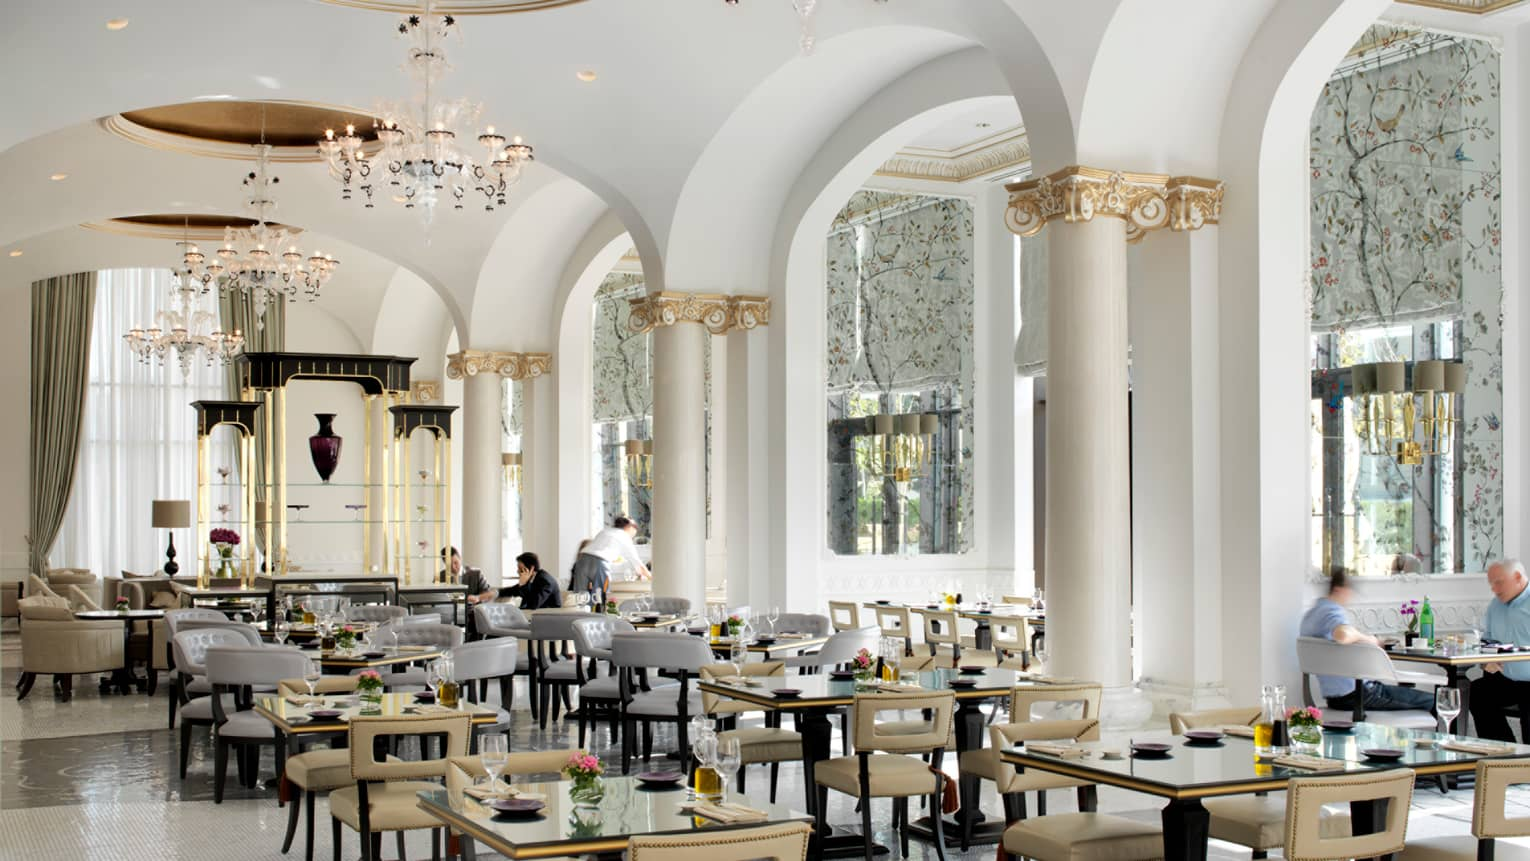 Image result for Zafferano restaurant baku